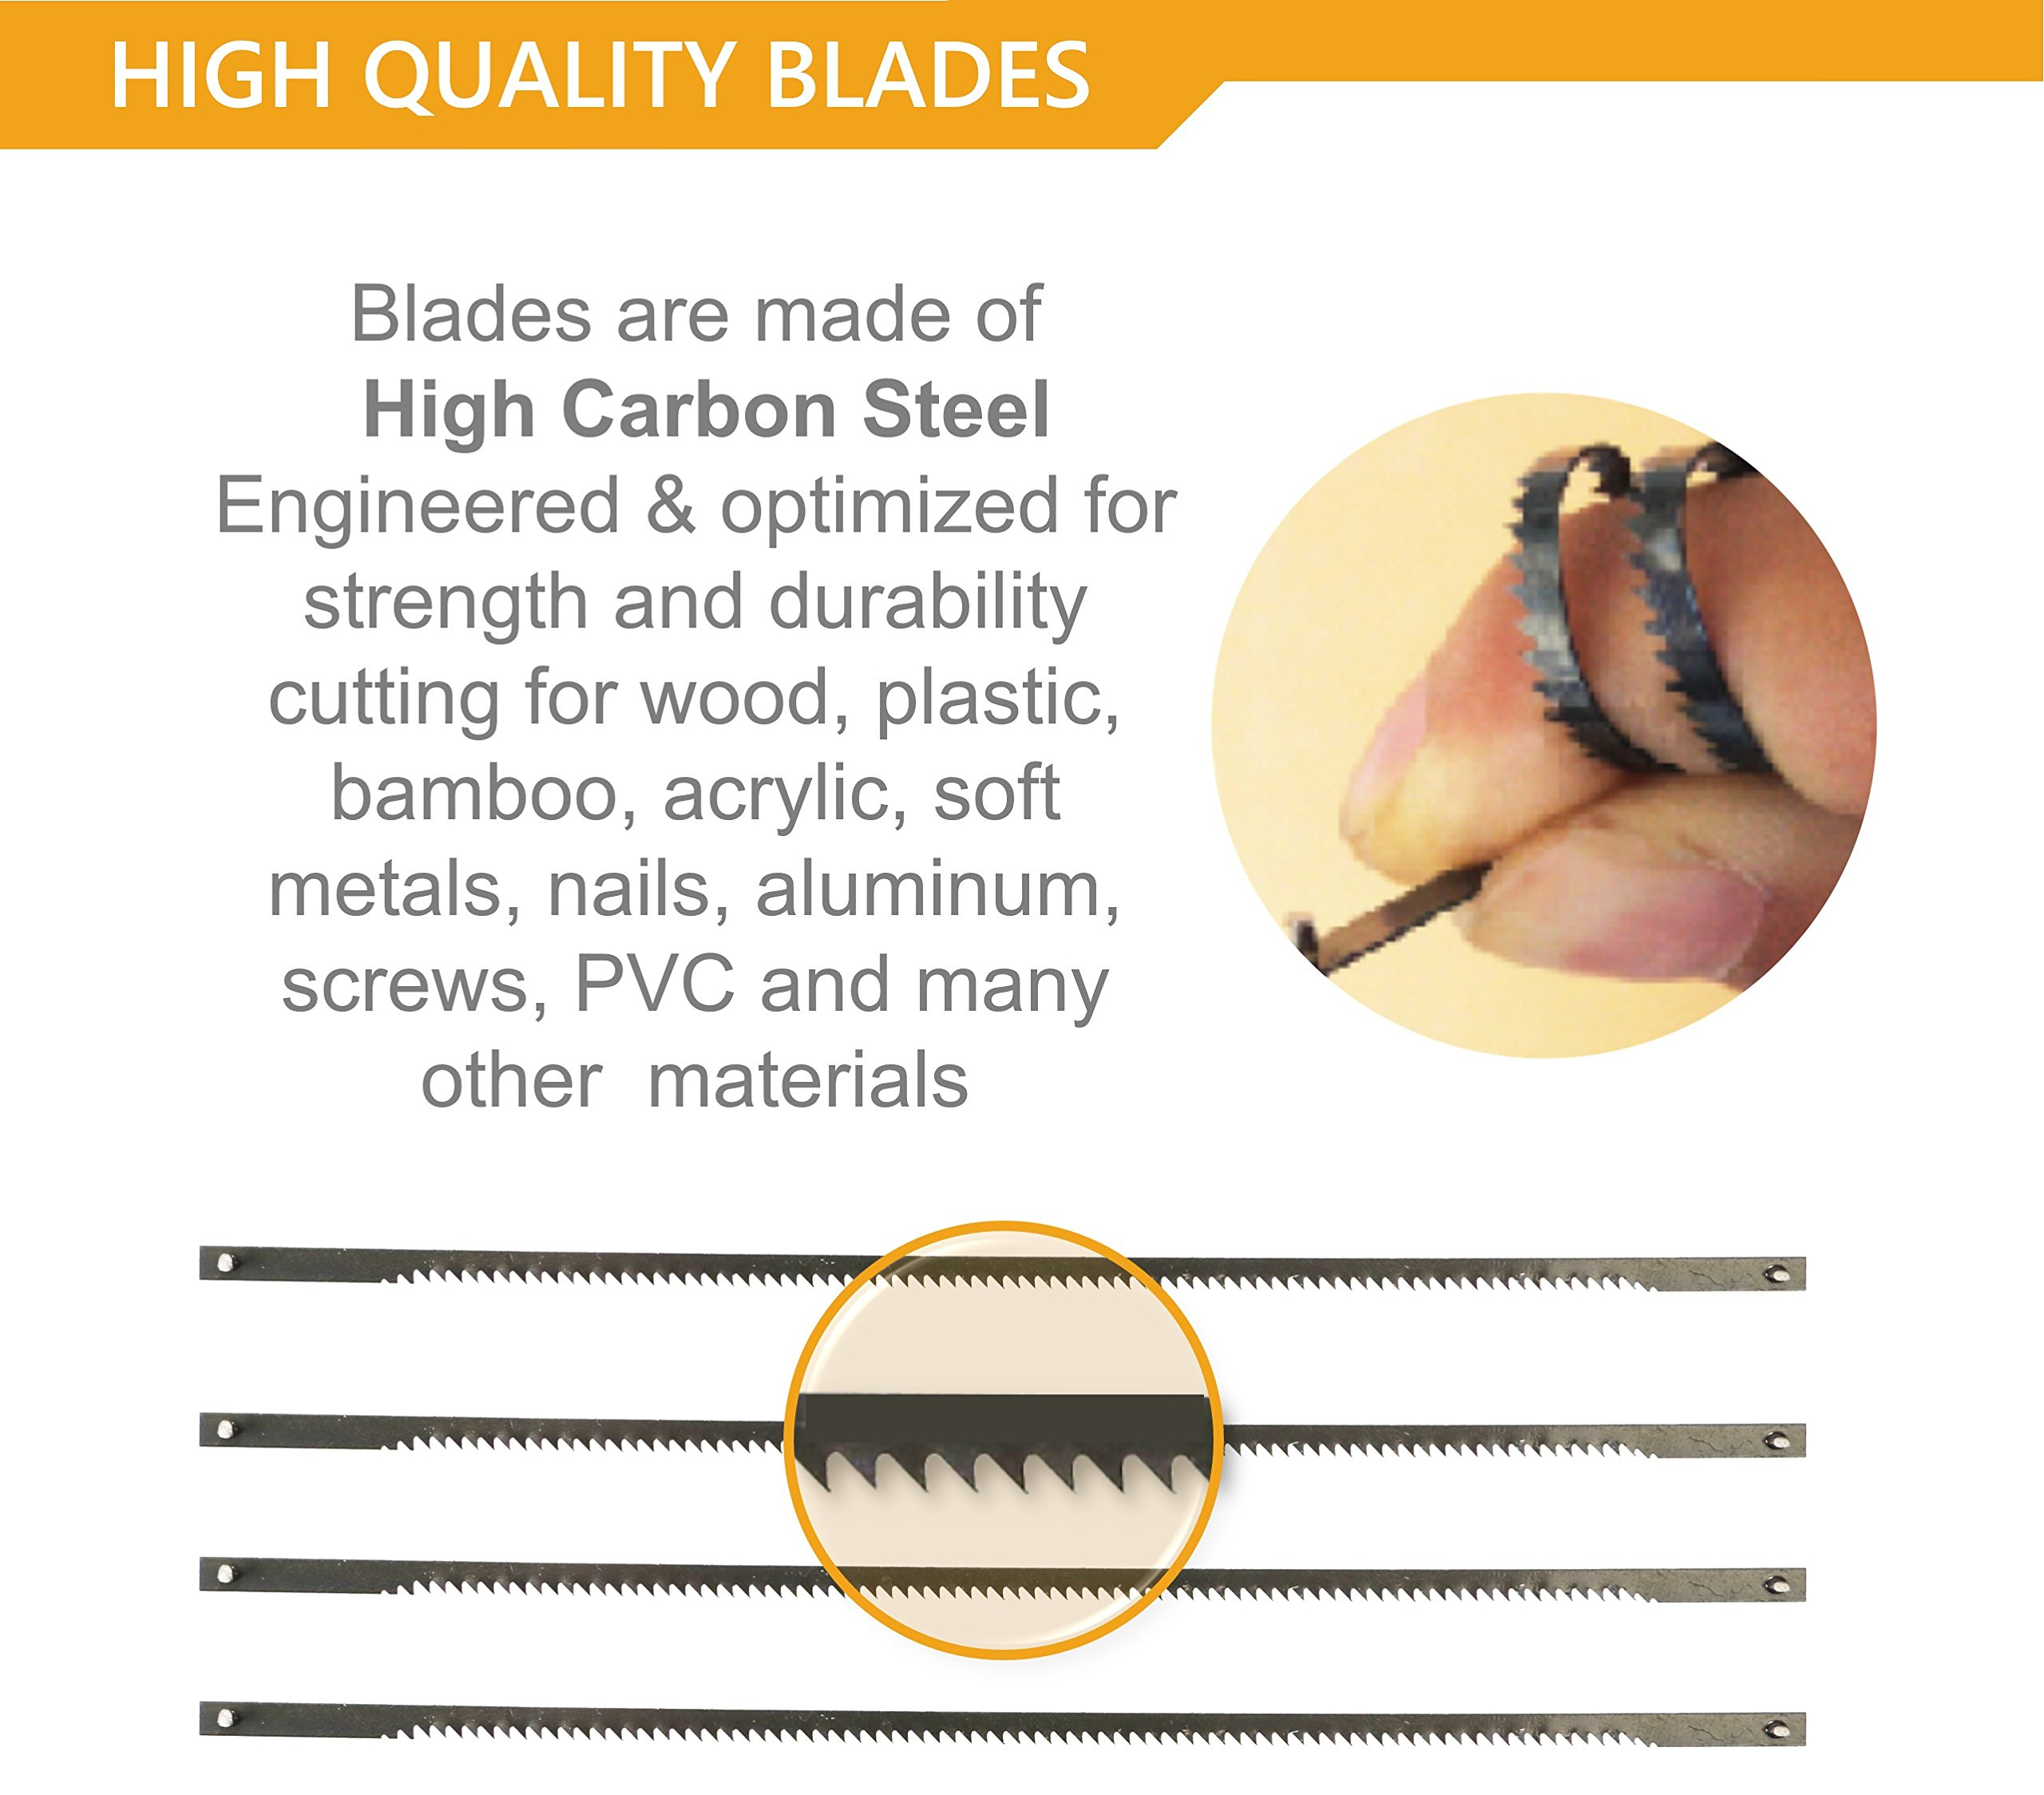 Original Magic Coping Saw with 6 inch High Carbon Steel Pins Blades, a Heavy Duty H shape Metal Frame Works as Fret Saw, Hacksaw, and Pruning Saw & Suitable to Cut Wood, Plastic, PVC, Aluminum, Nails by Amazing Tools (Image #6)